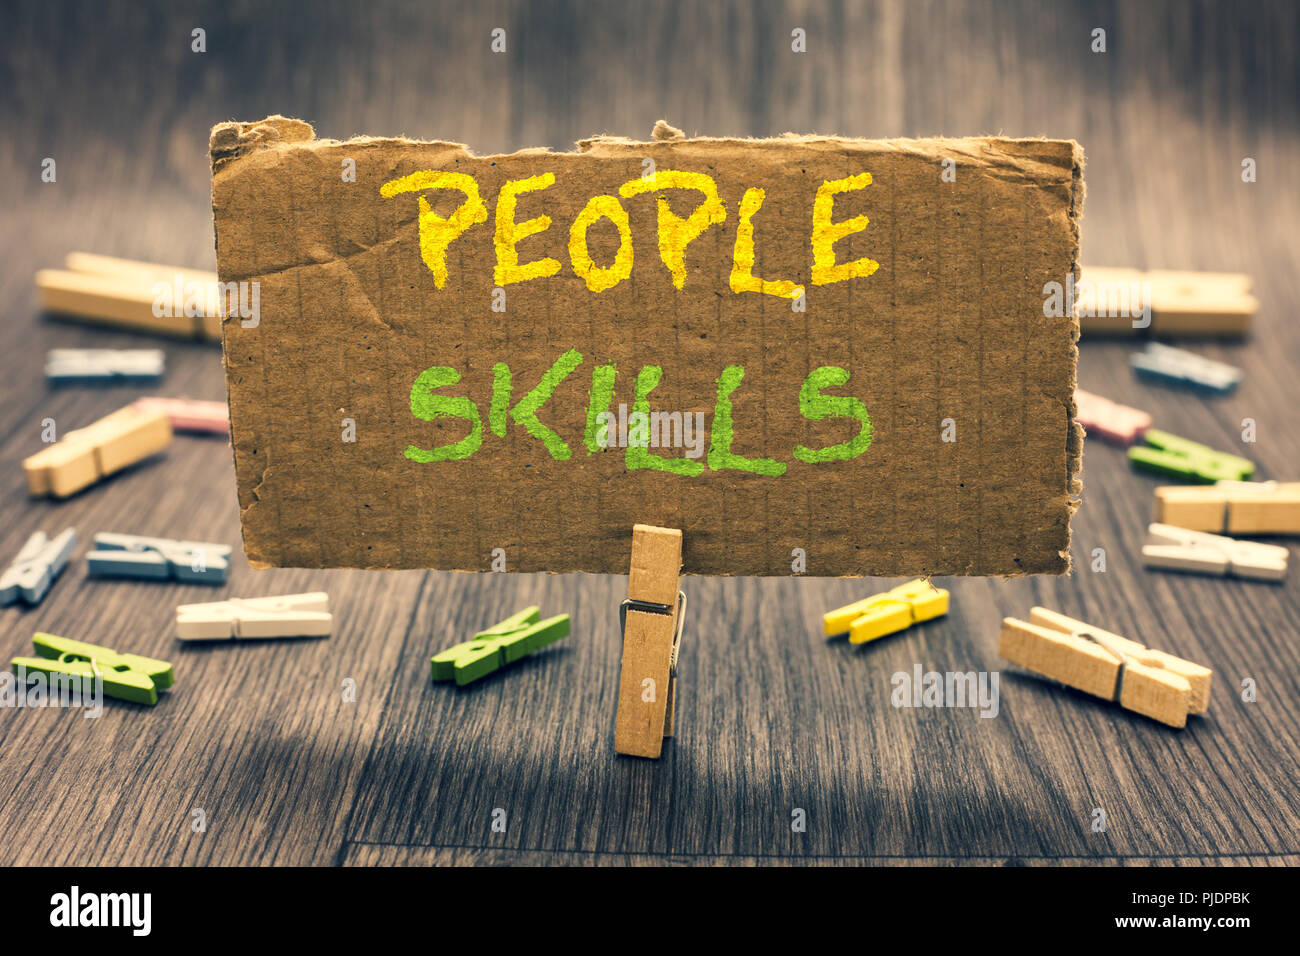 Writing note showing People Skills. Business photo showcasing Get Along well Effective Communication Rapport Approachable Clothespin holding paperboar - Stock Image